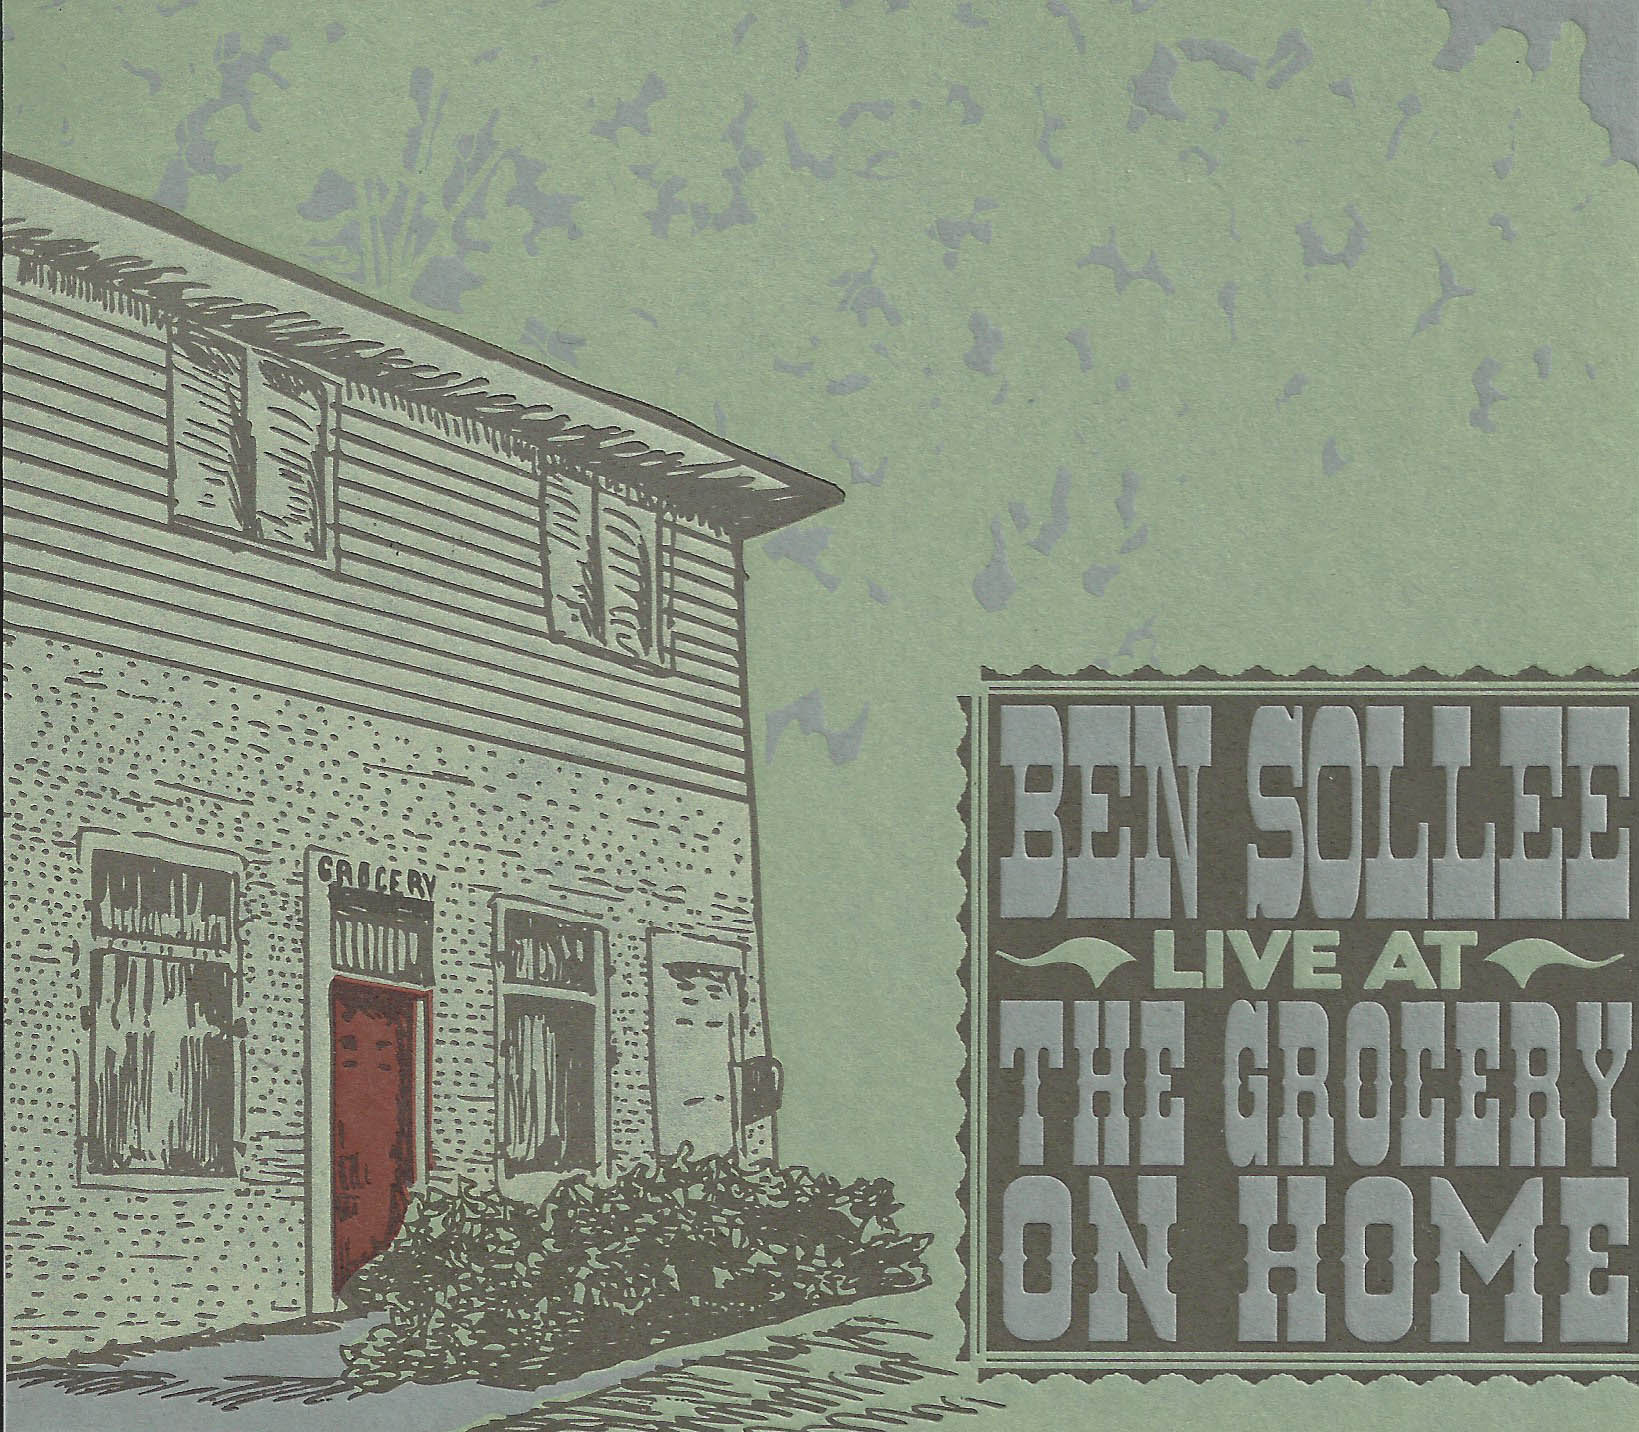 Ben Sollee Live At The Grocery On Home